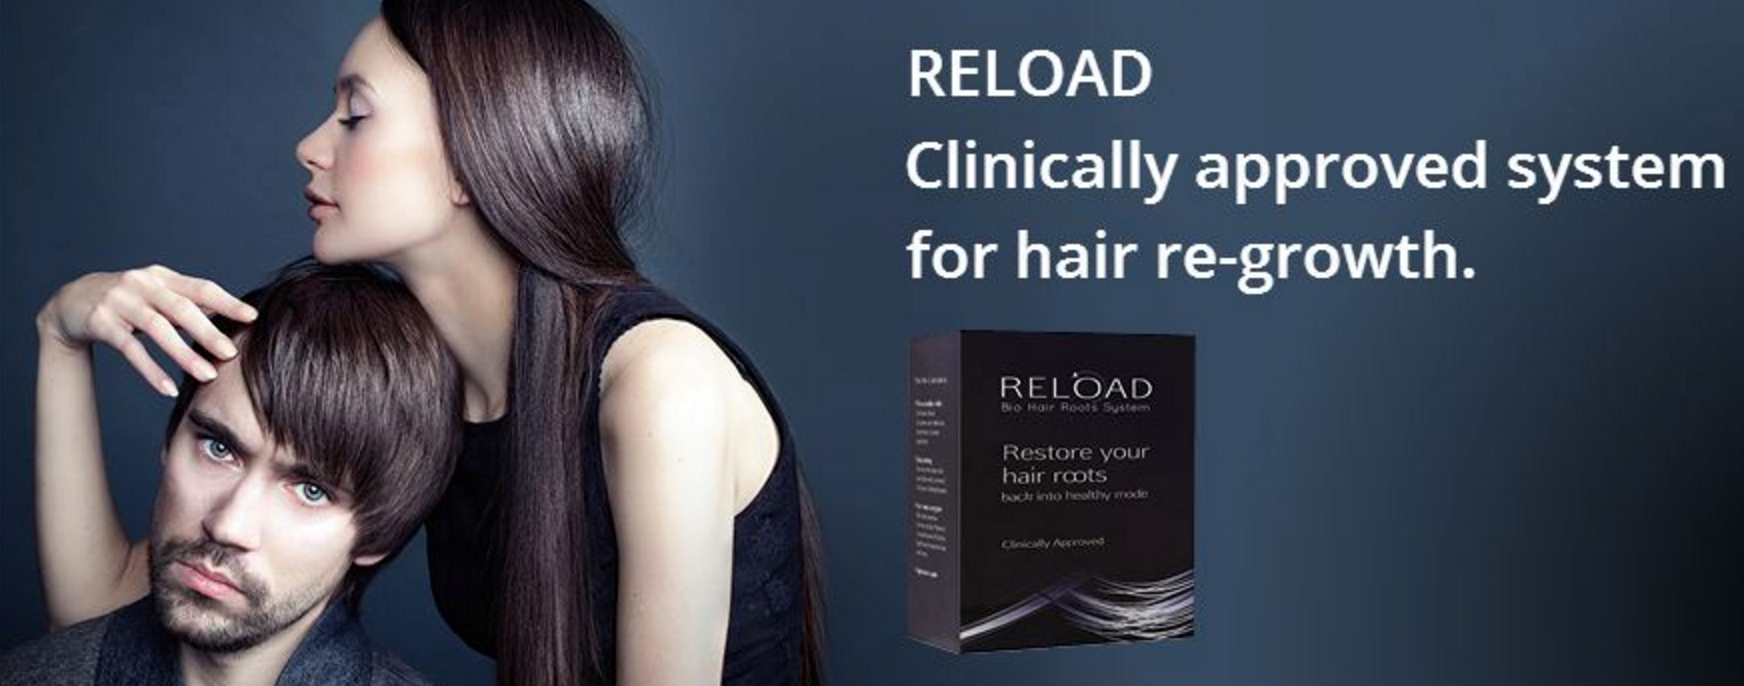 The Reload System Is Clinically Proven